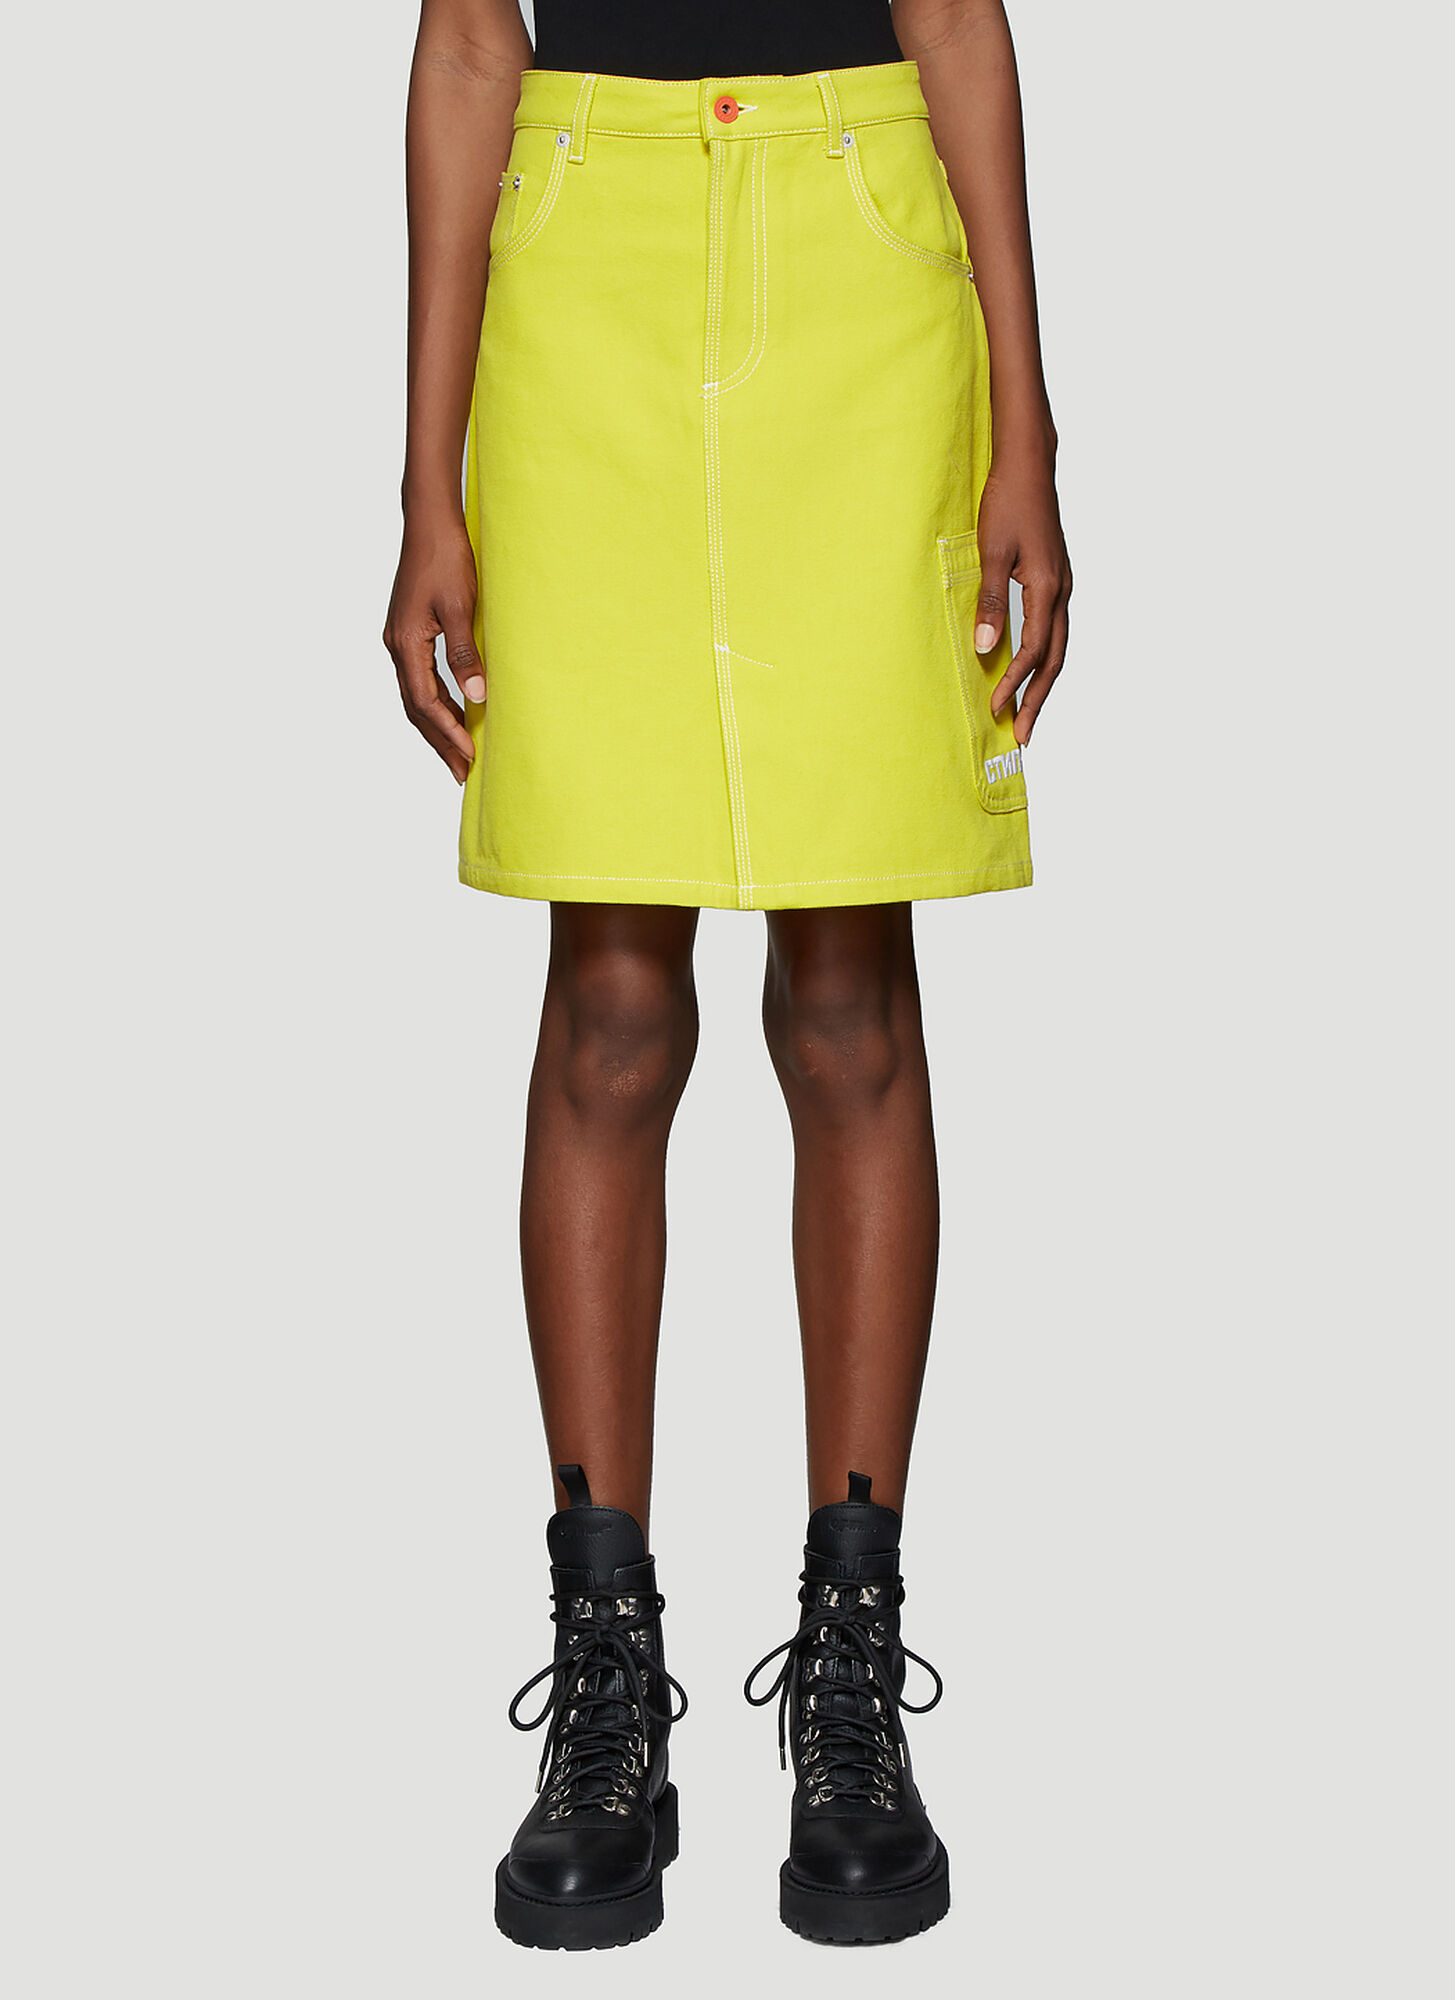 Heron Preston ????? Skirt in Yellow